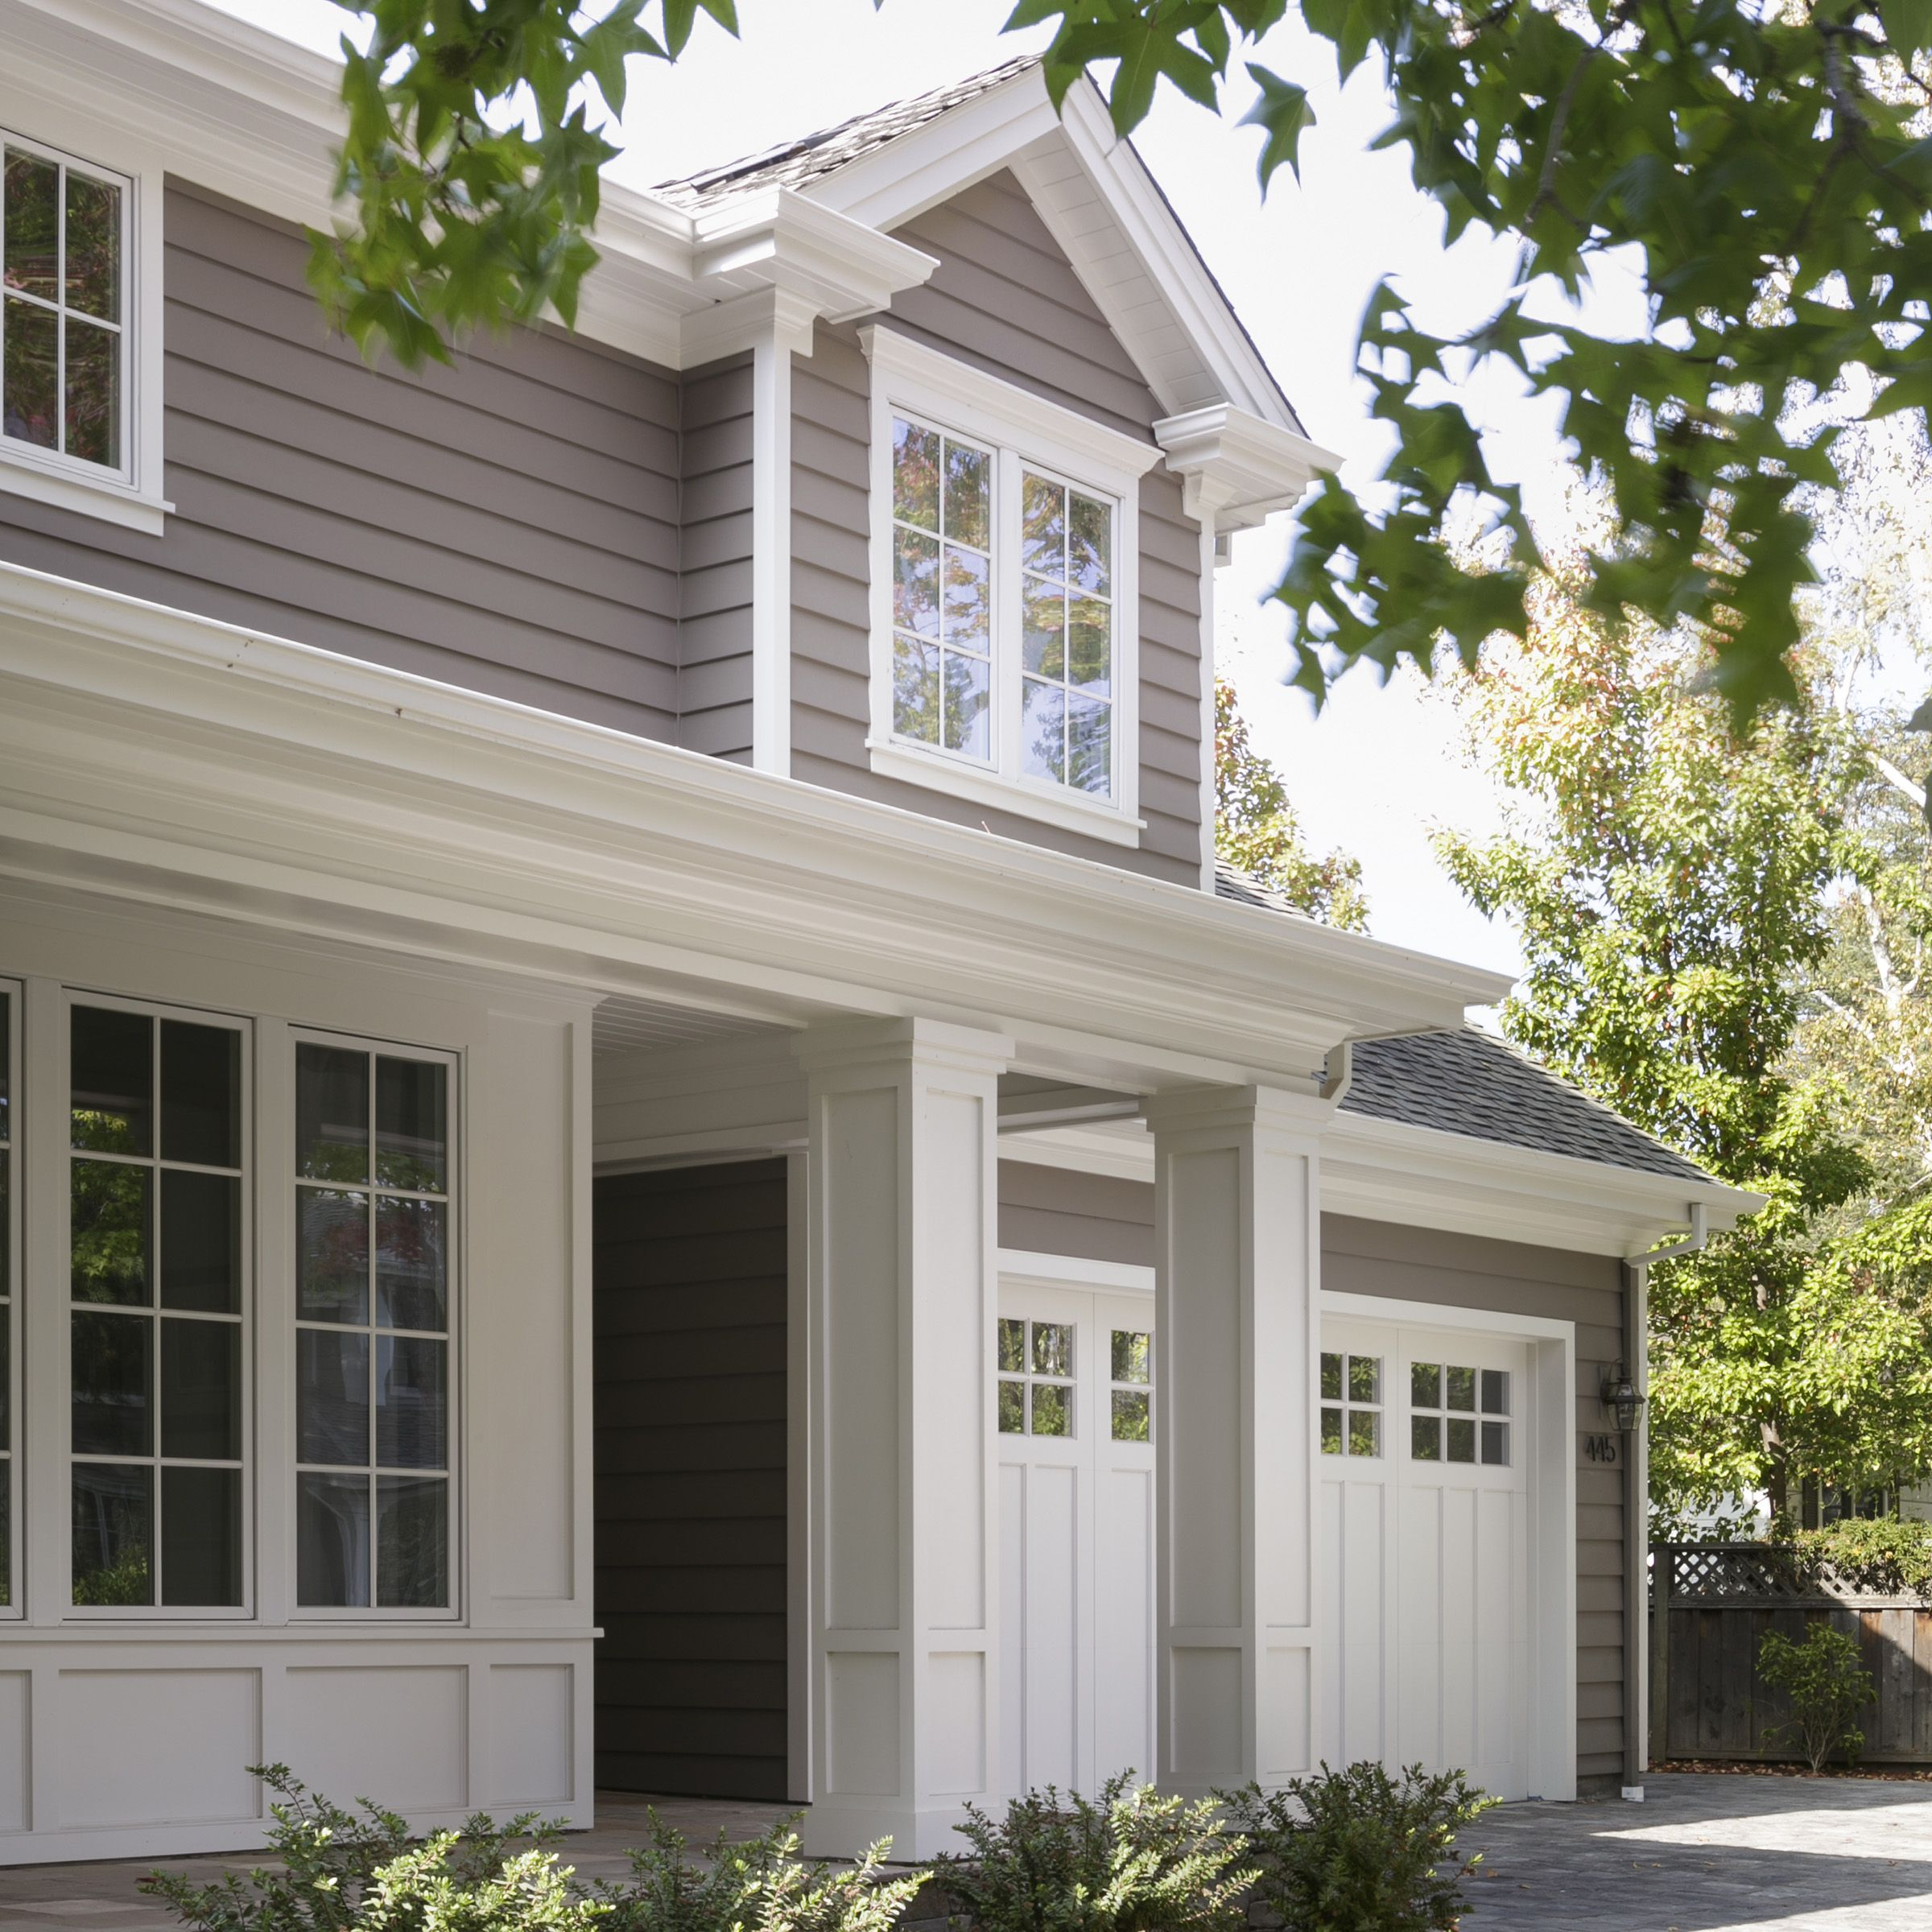 Refresh your home with Kelly-Moore Paints! This Abbey Road exterior ...